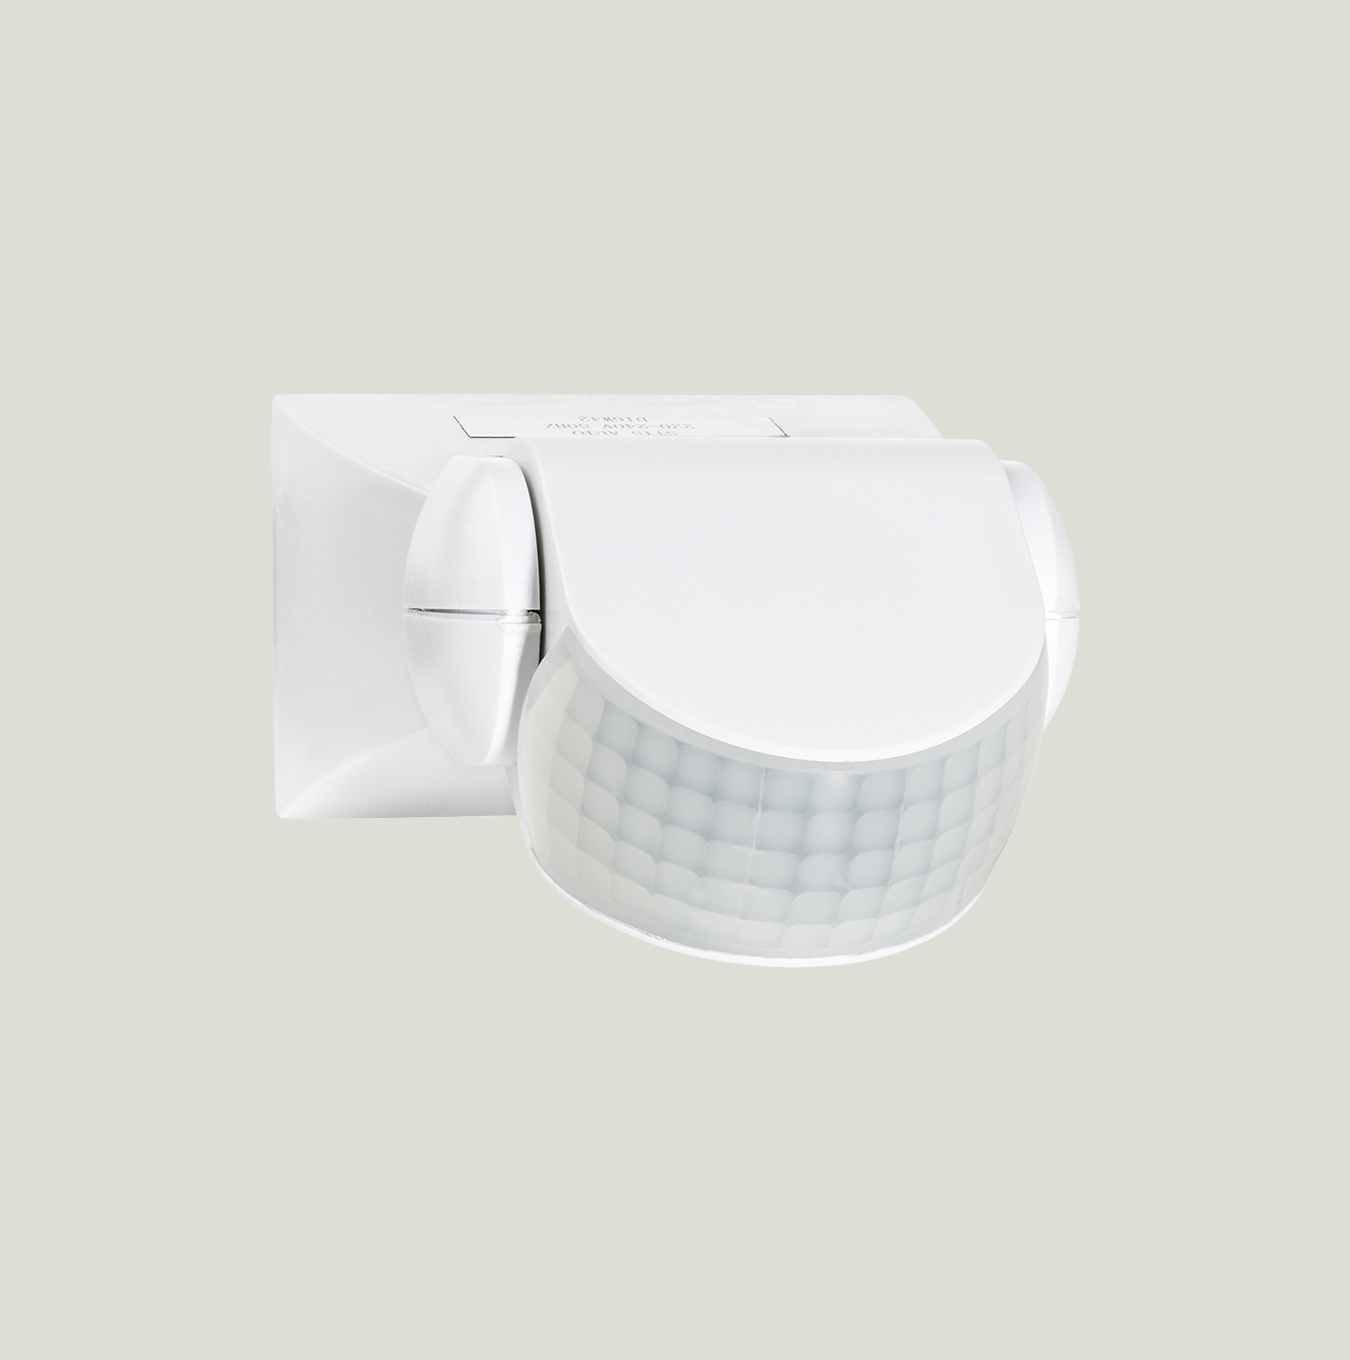 Outdoor Light Pir Override: Twin LED Floodlight With Sensor